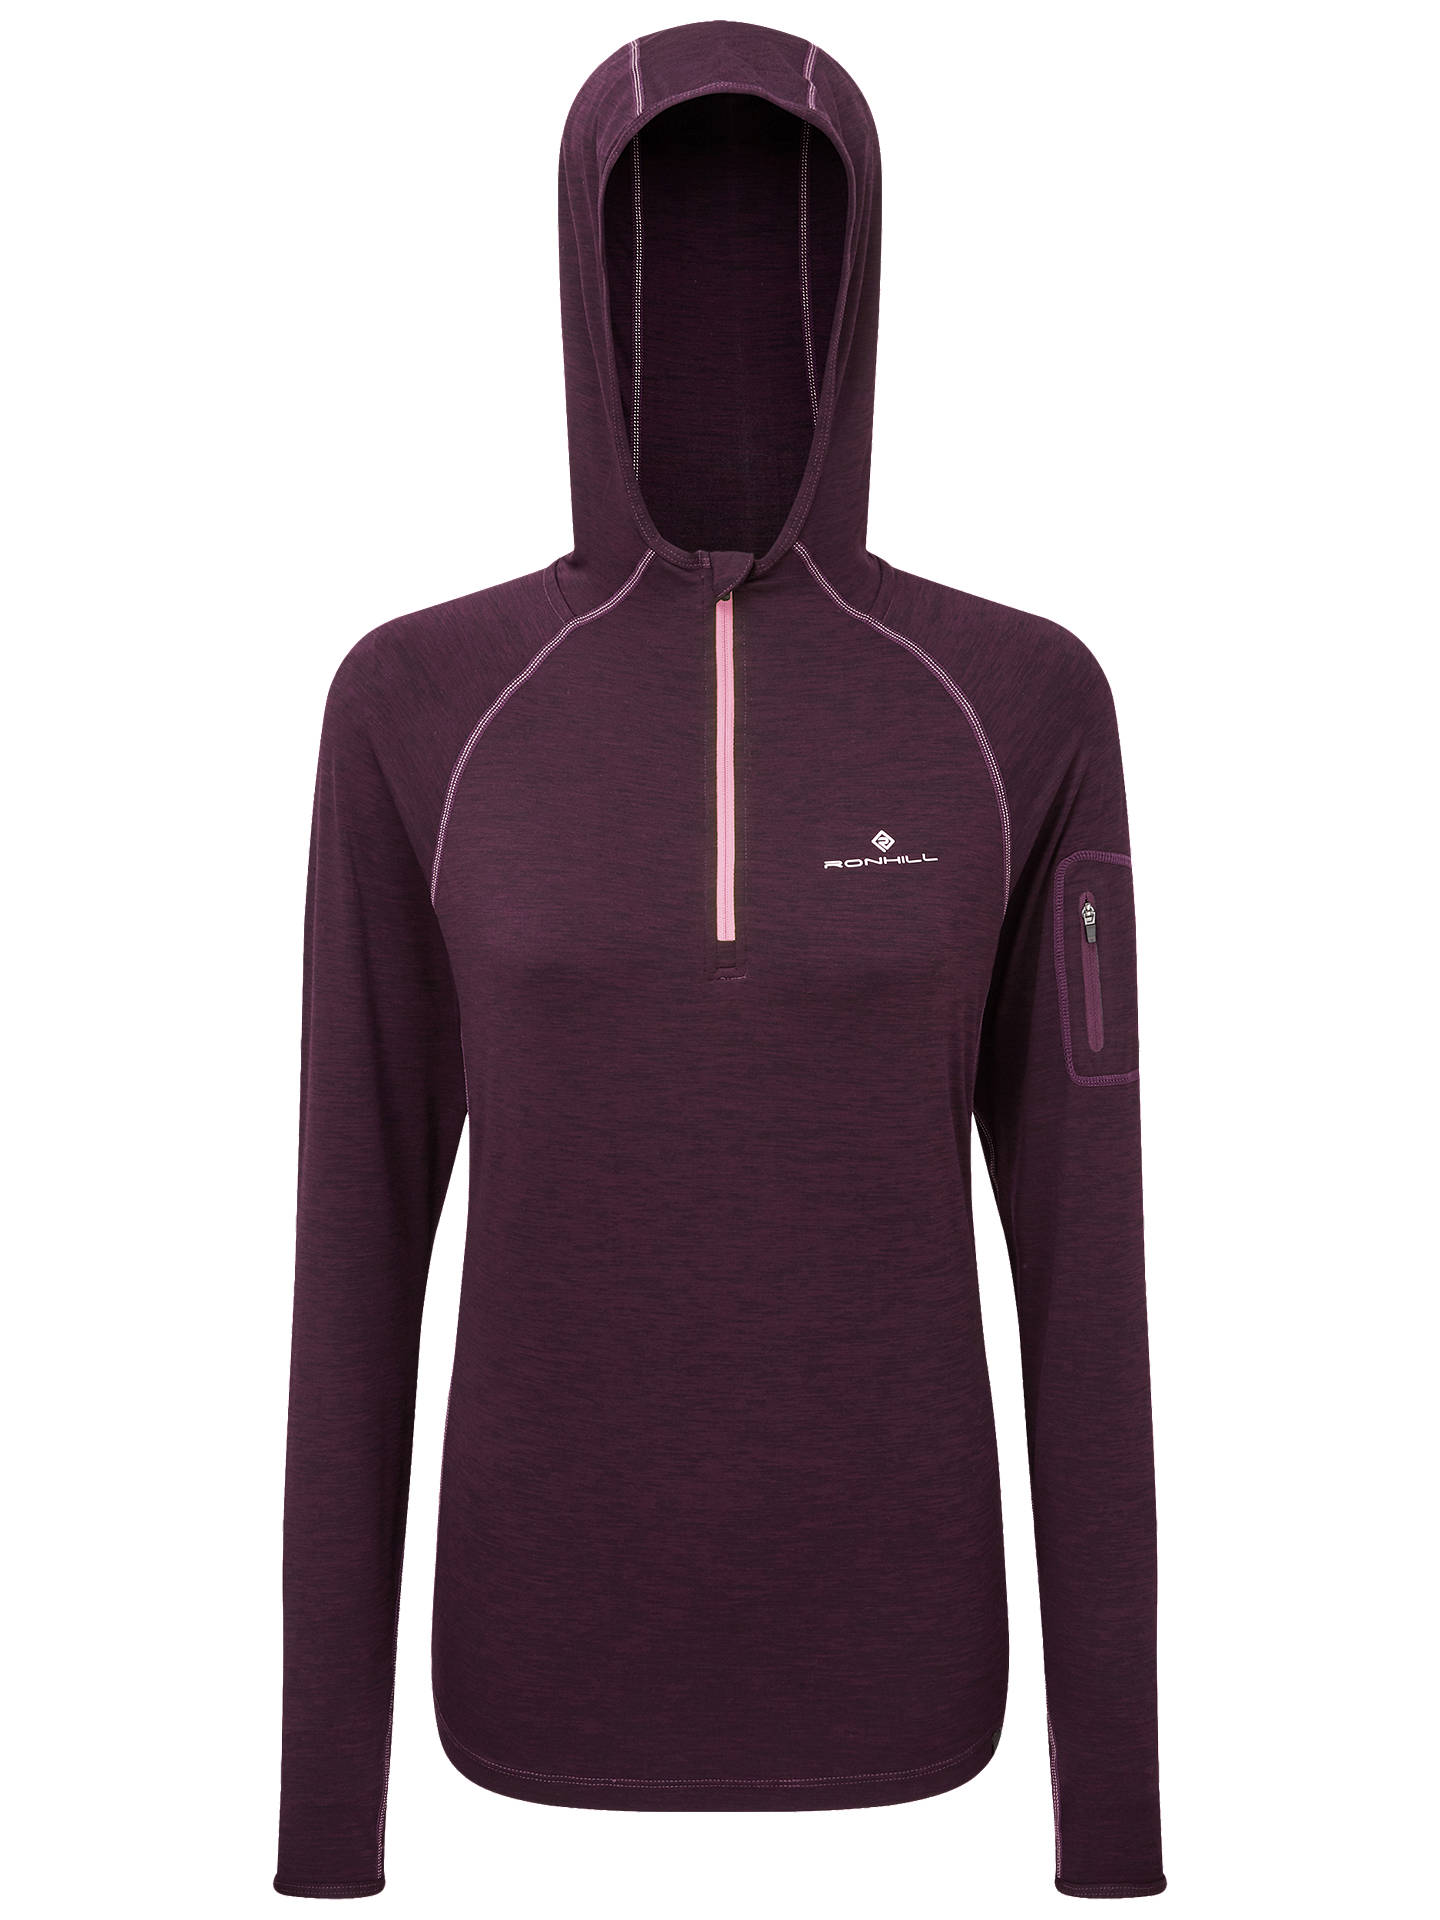 BuyRonhill Momentum Workout Hoodie, Aubergine/Blossom, 16 Online at johnlewis.com